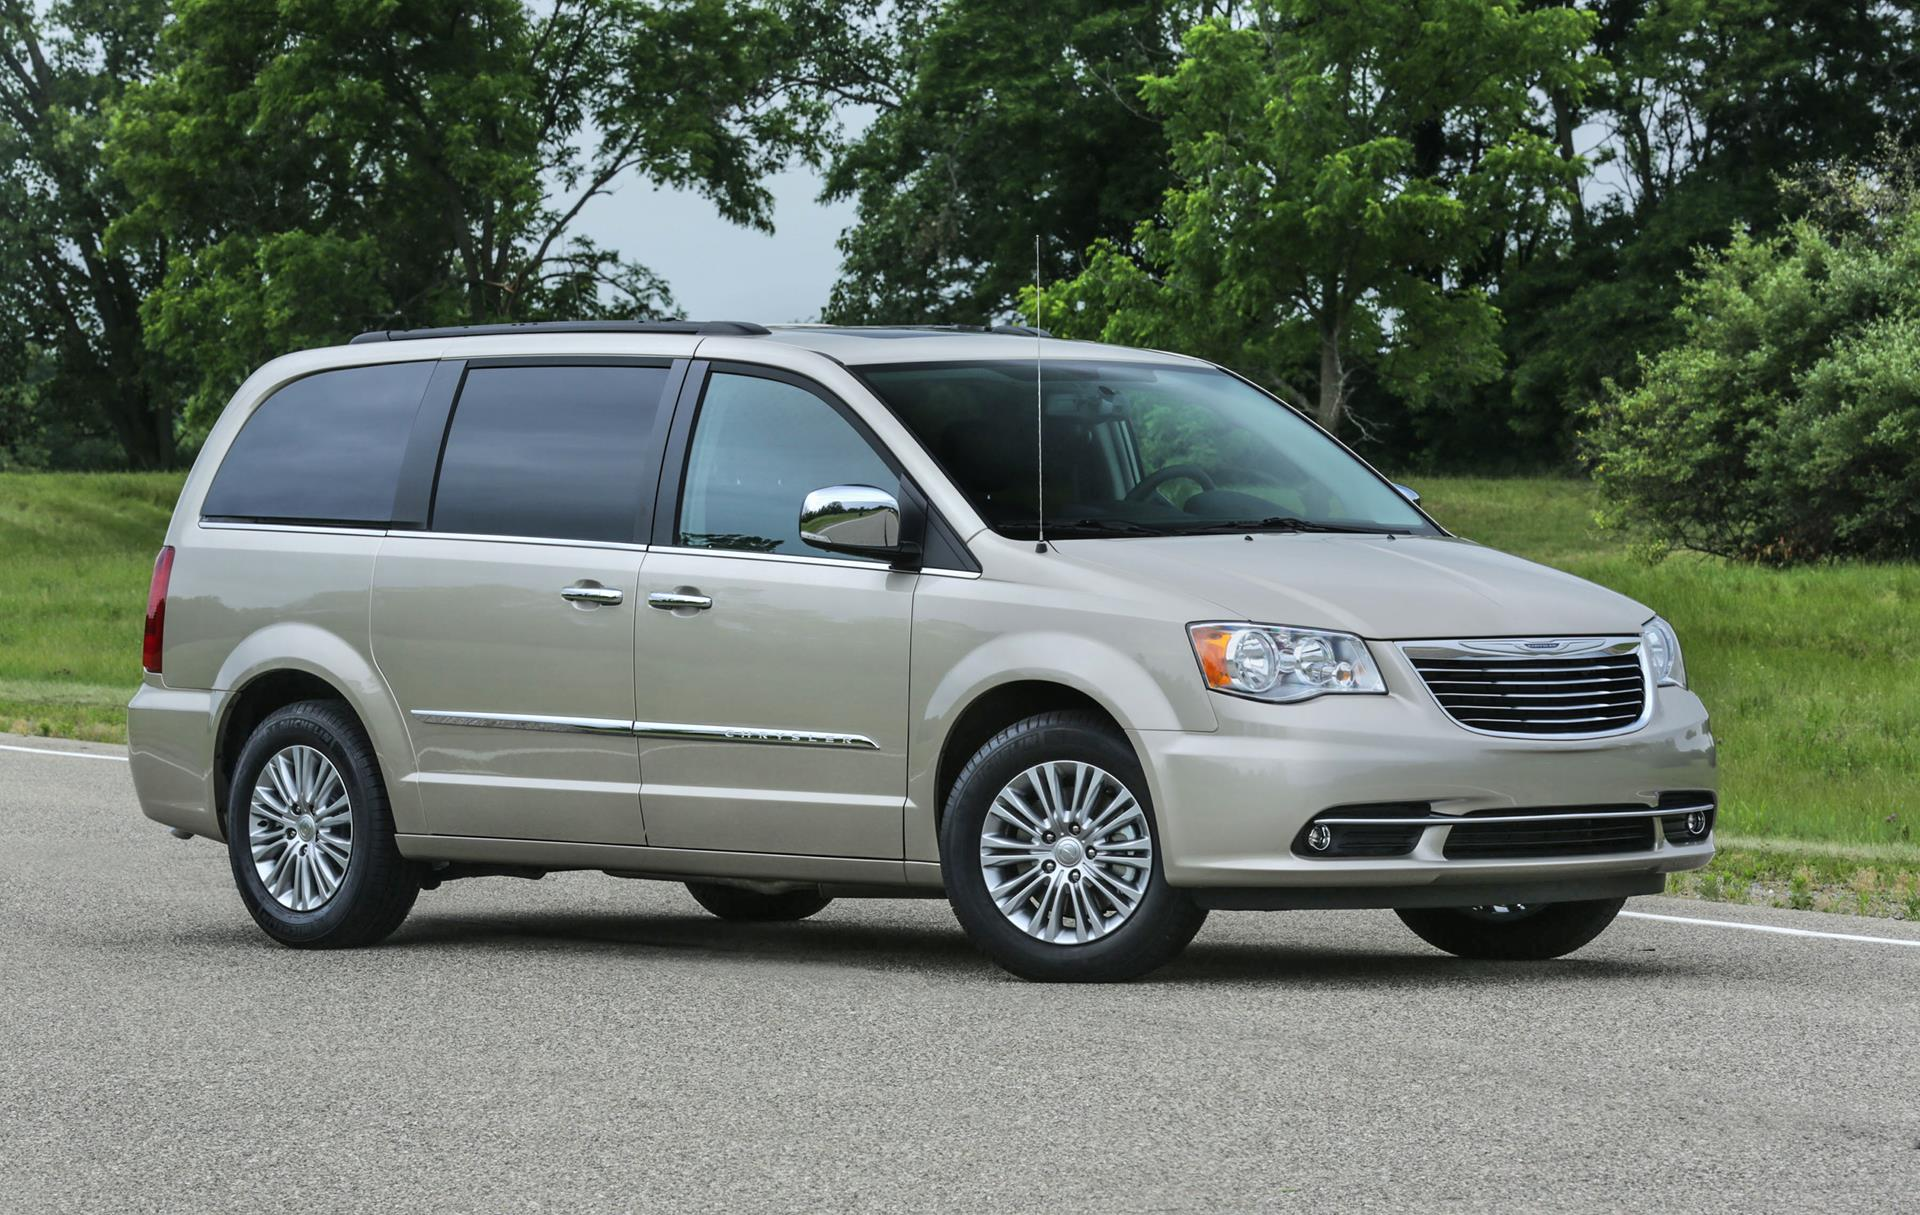 2016 chrysler town country. Black Bedroom Furniture Sets. Home Design Ideas